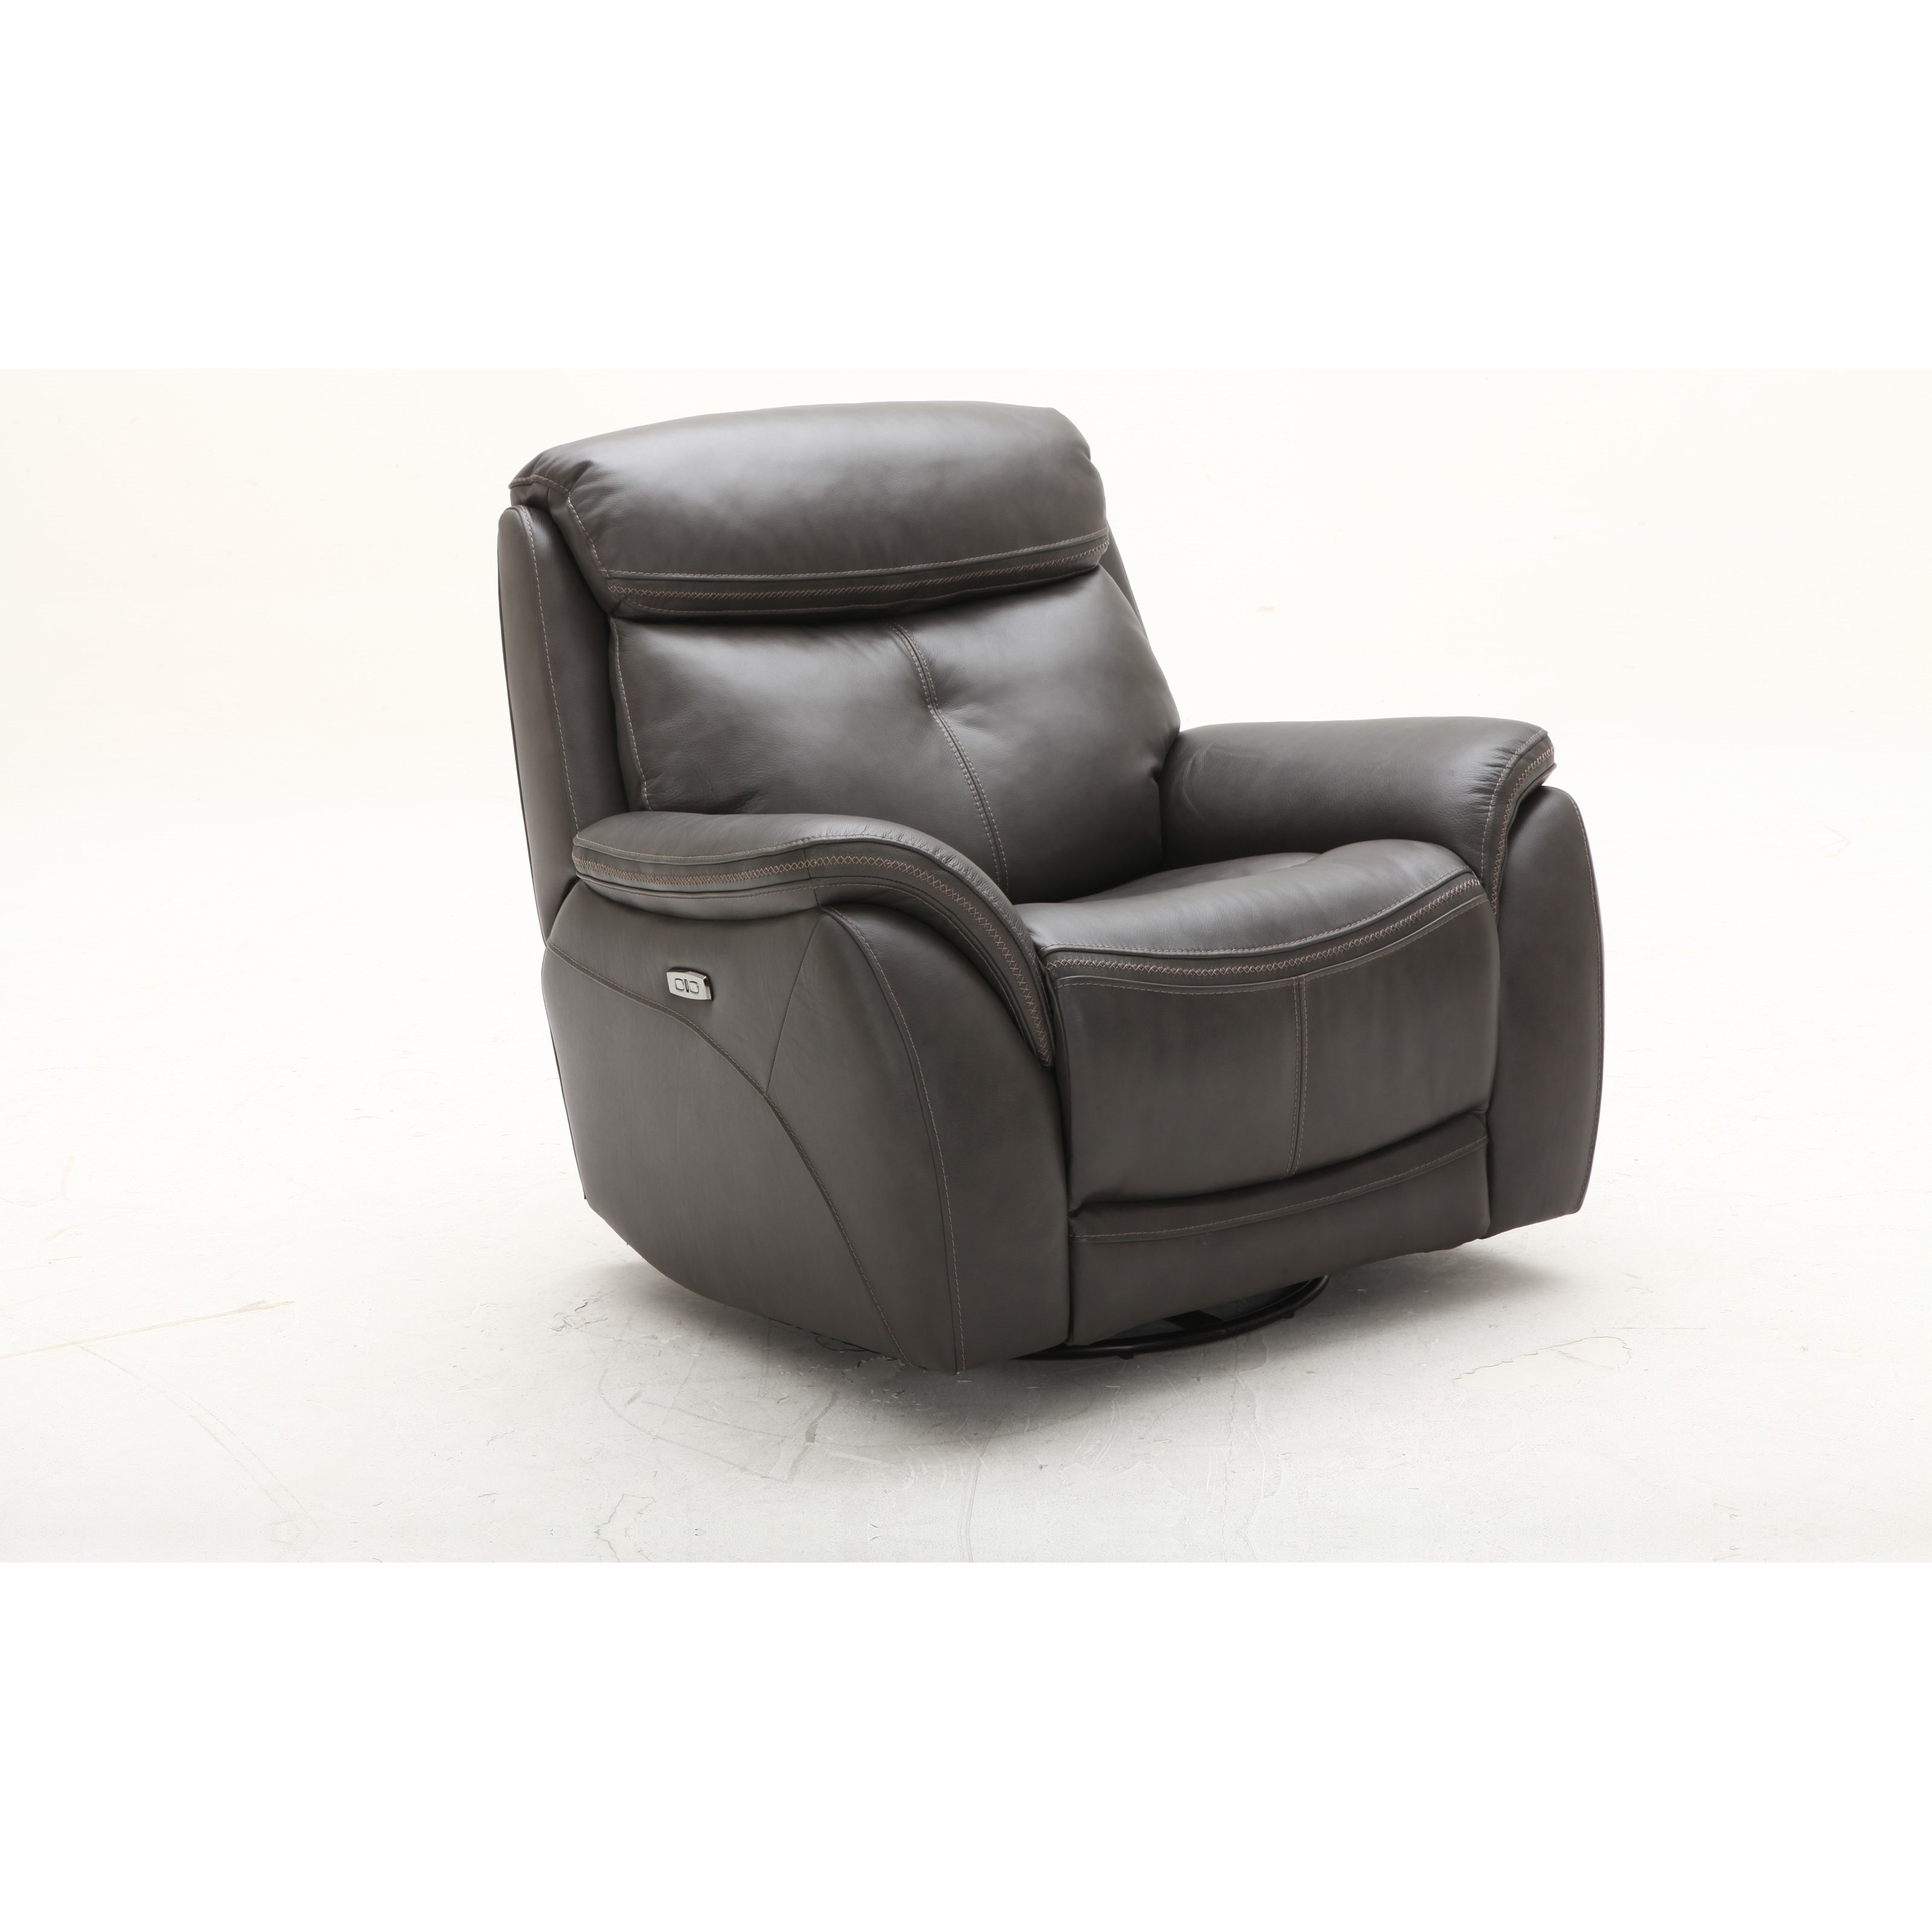 Homerun Swivel Glider Power Headrest Recliner by Southern Motion at Suburban Furniture